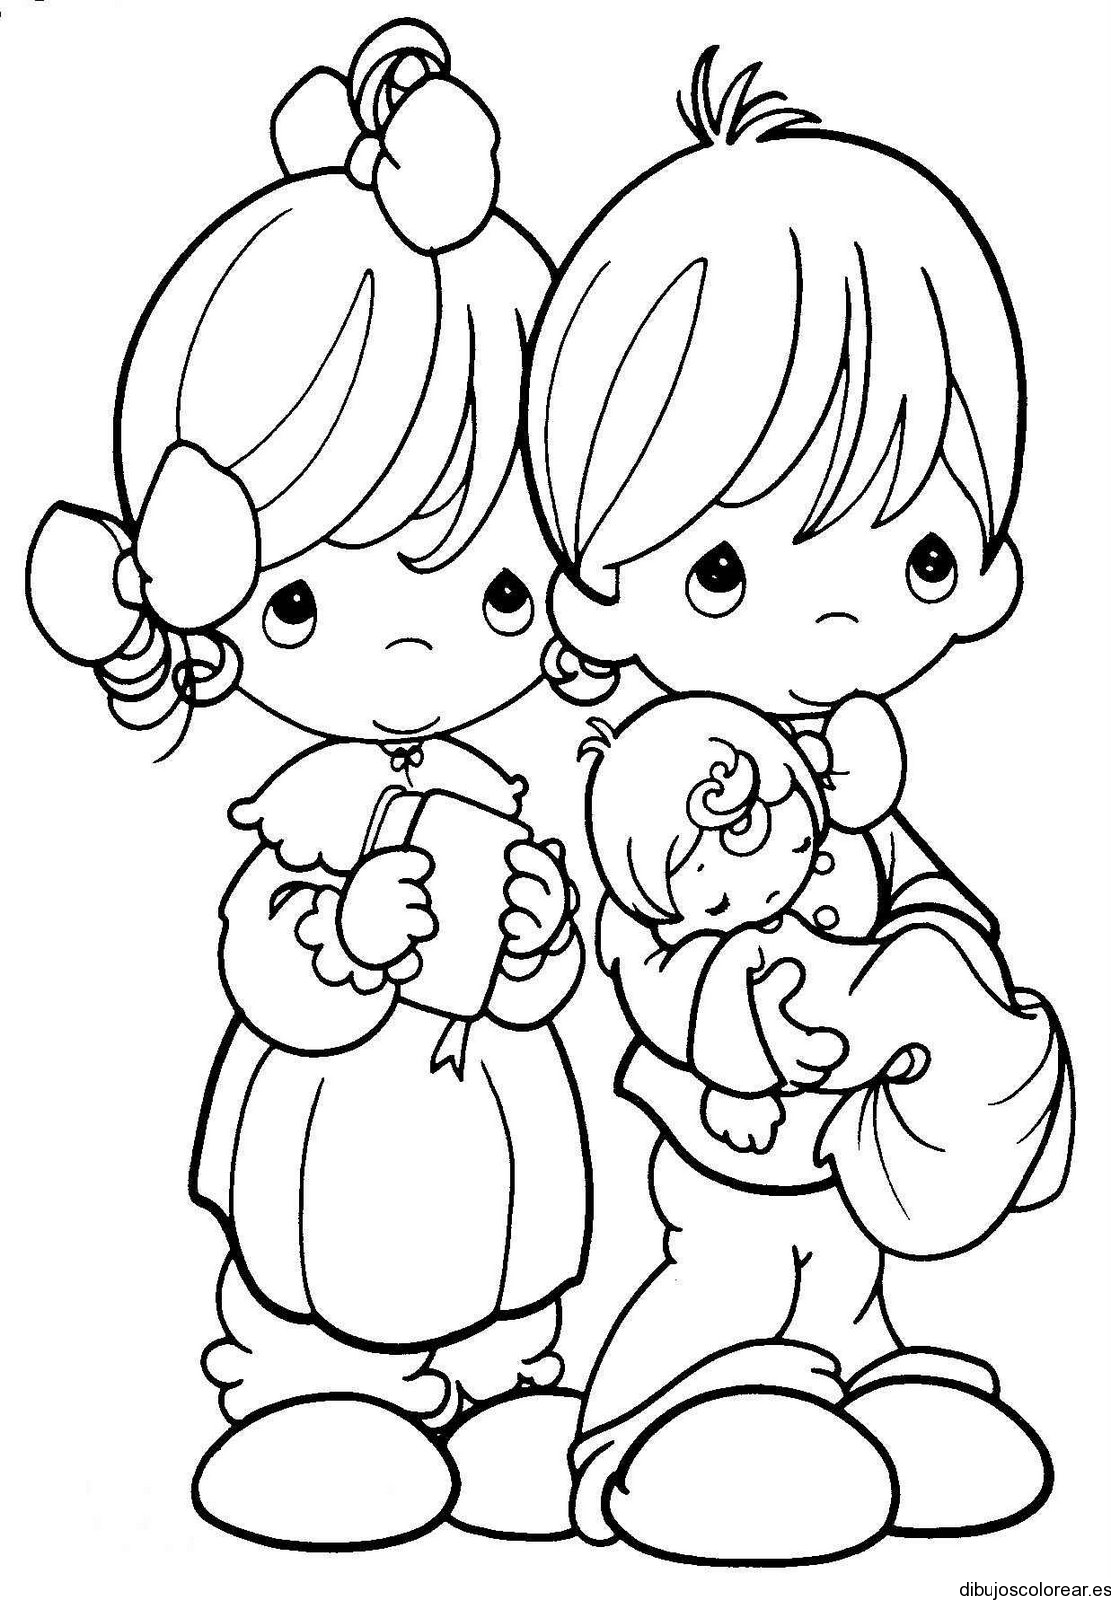 Happy Mothers Day Grandma Coloring Page besides 436638126357679013 together with Happy 18th Birthday Ben also Interchangeable Wreath besides Funny Mothers Day Card Mum Mom Birthday. on happy birthday cartoons for daughter